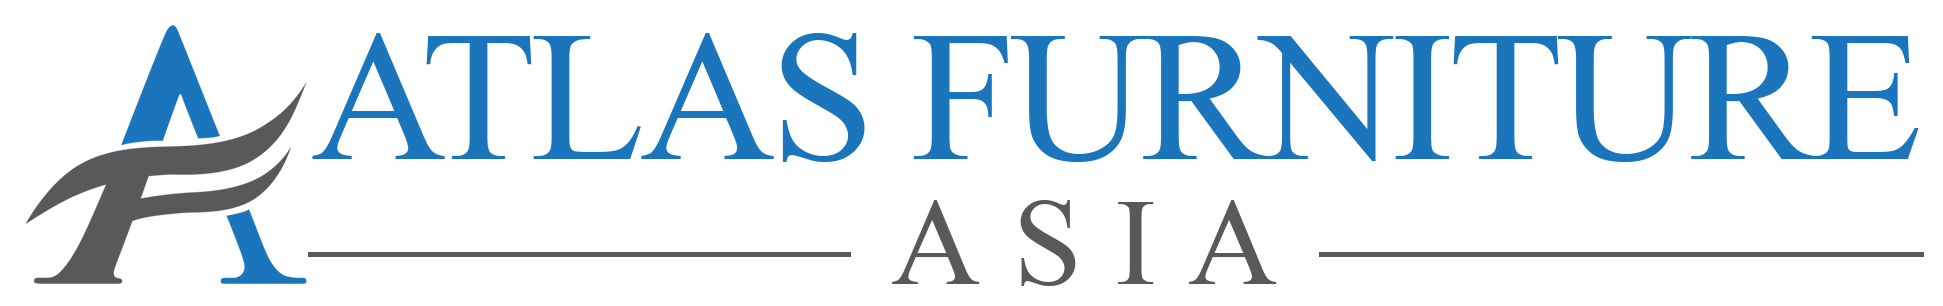 Atlas Furniture Asia logo